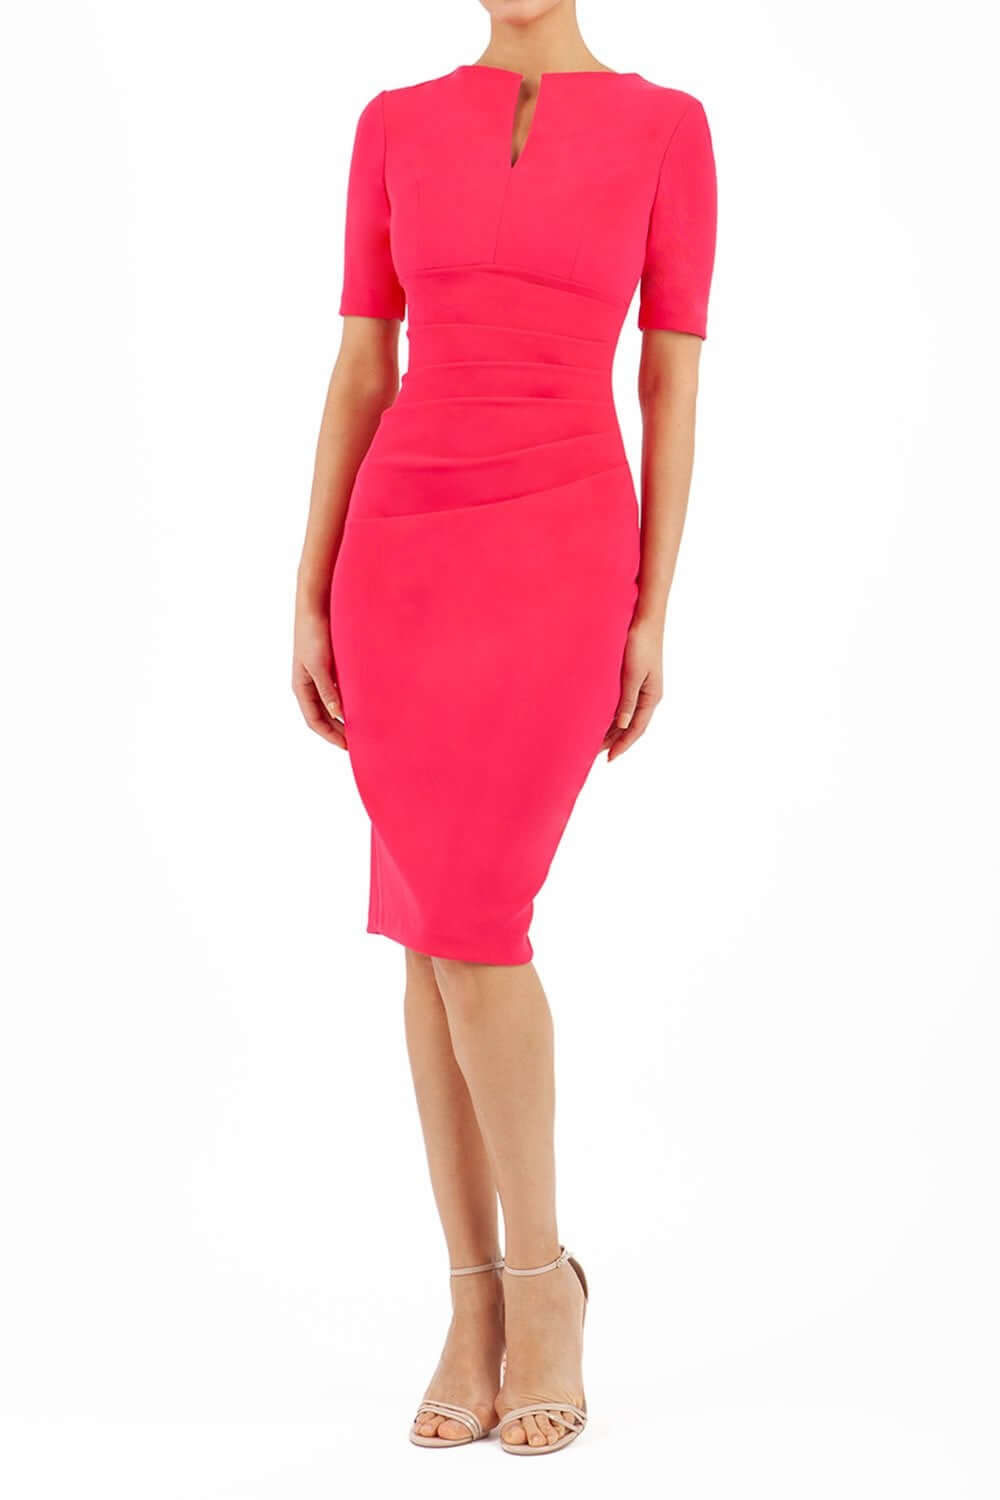 lydia-short-sleeved-pencil-dress-p197-57048_zoom pink 1 new